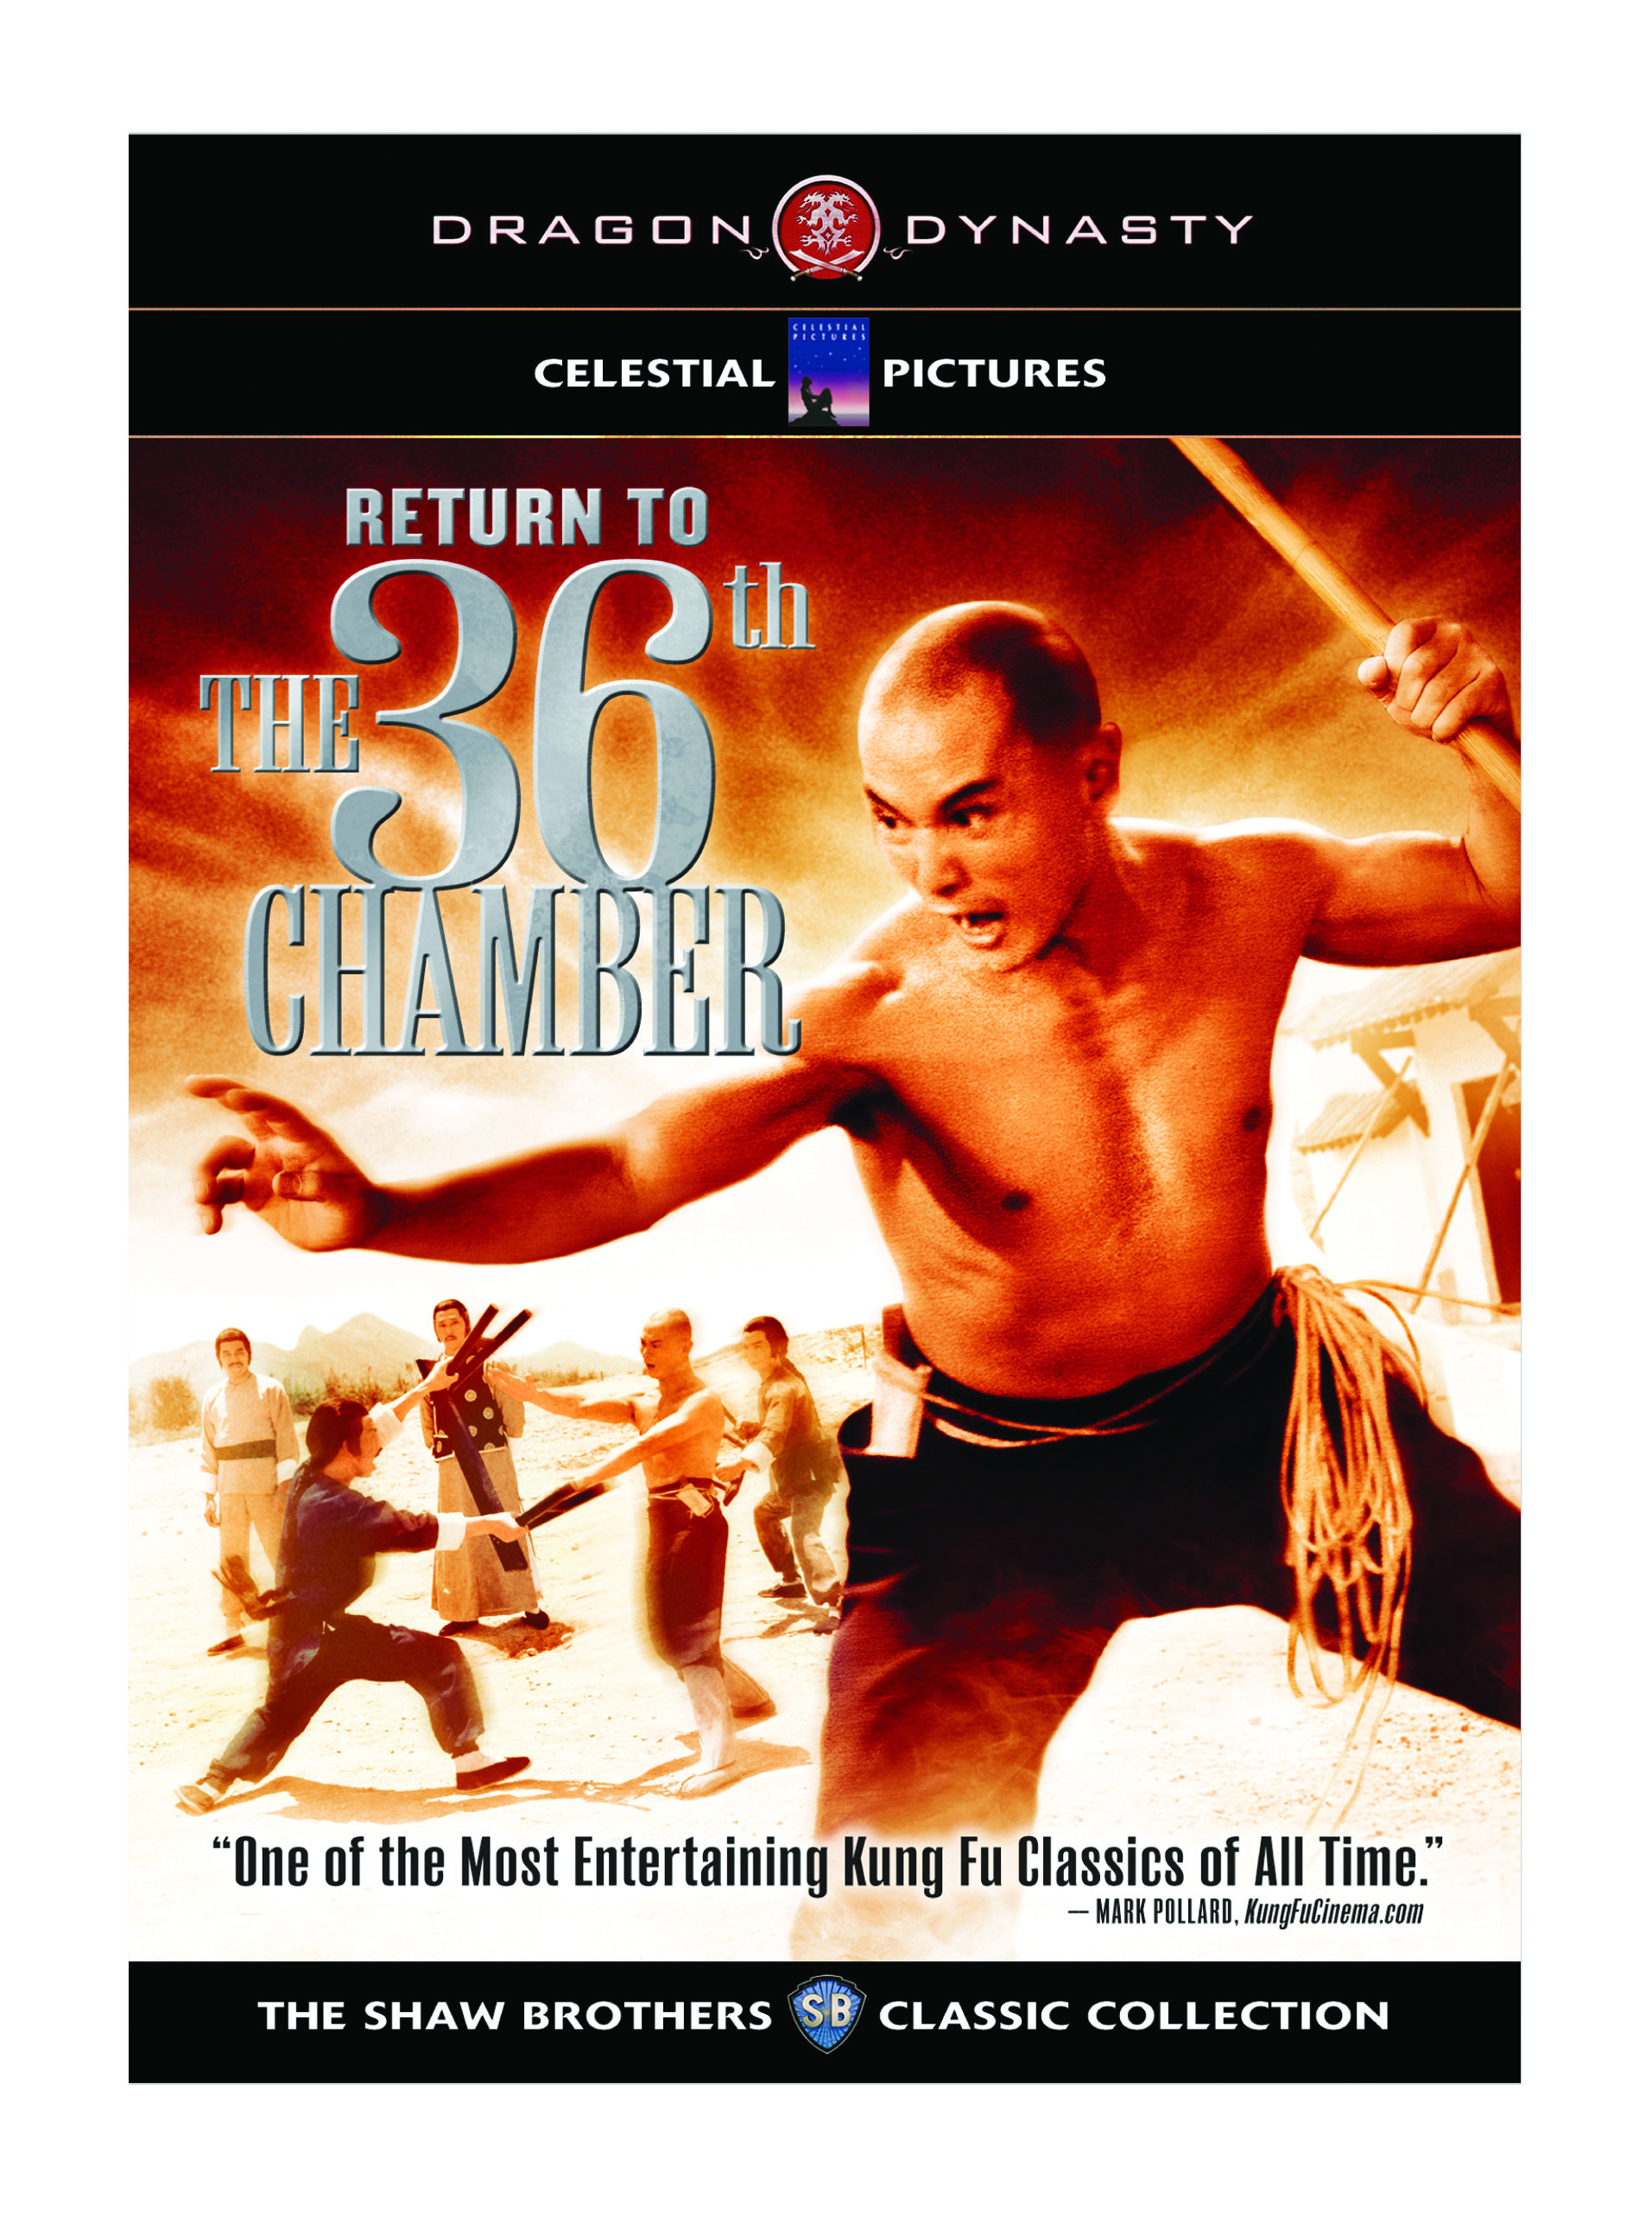 Return to the 36th chamber the weinstein company for 1980 floor show dvd